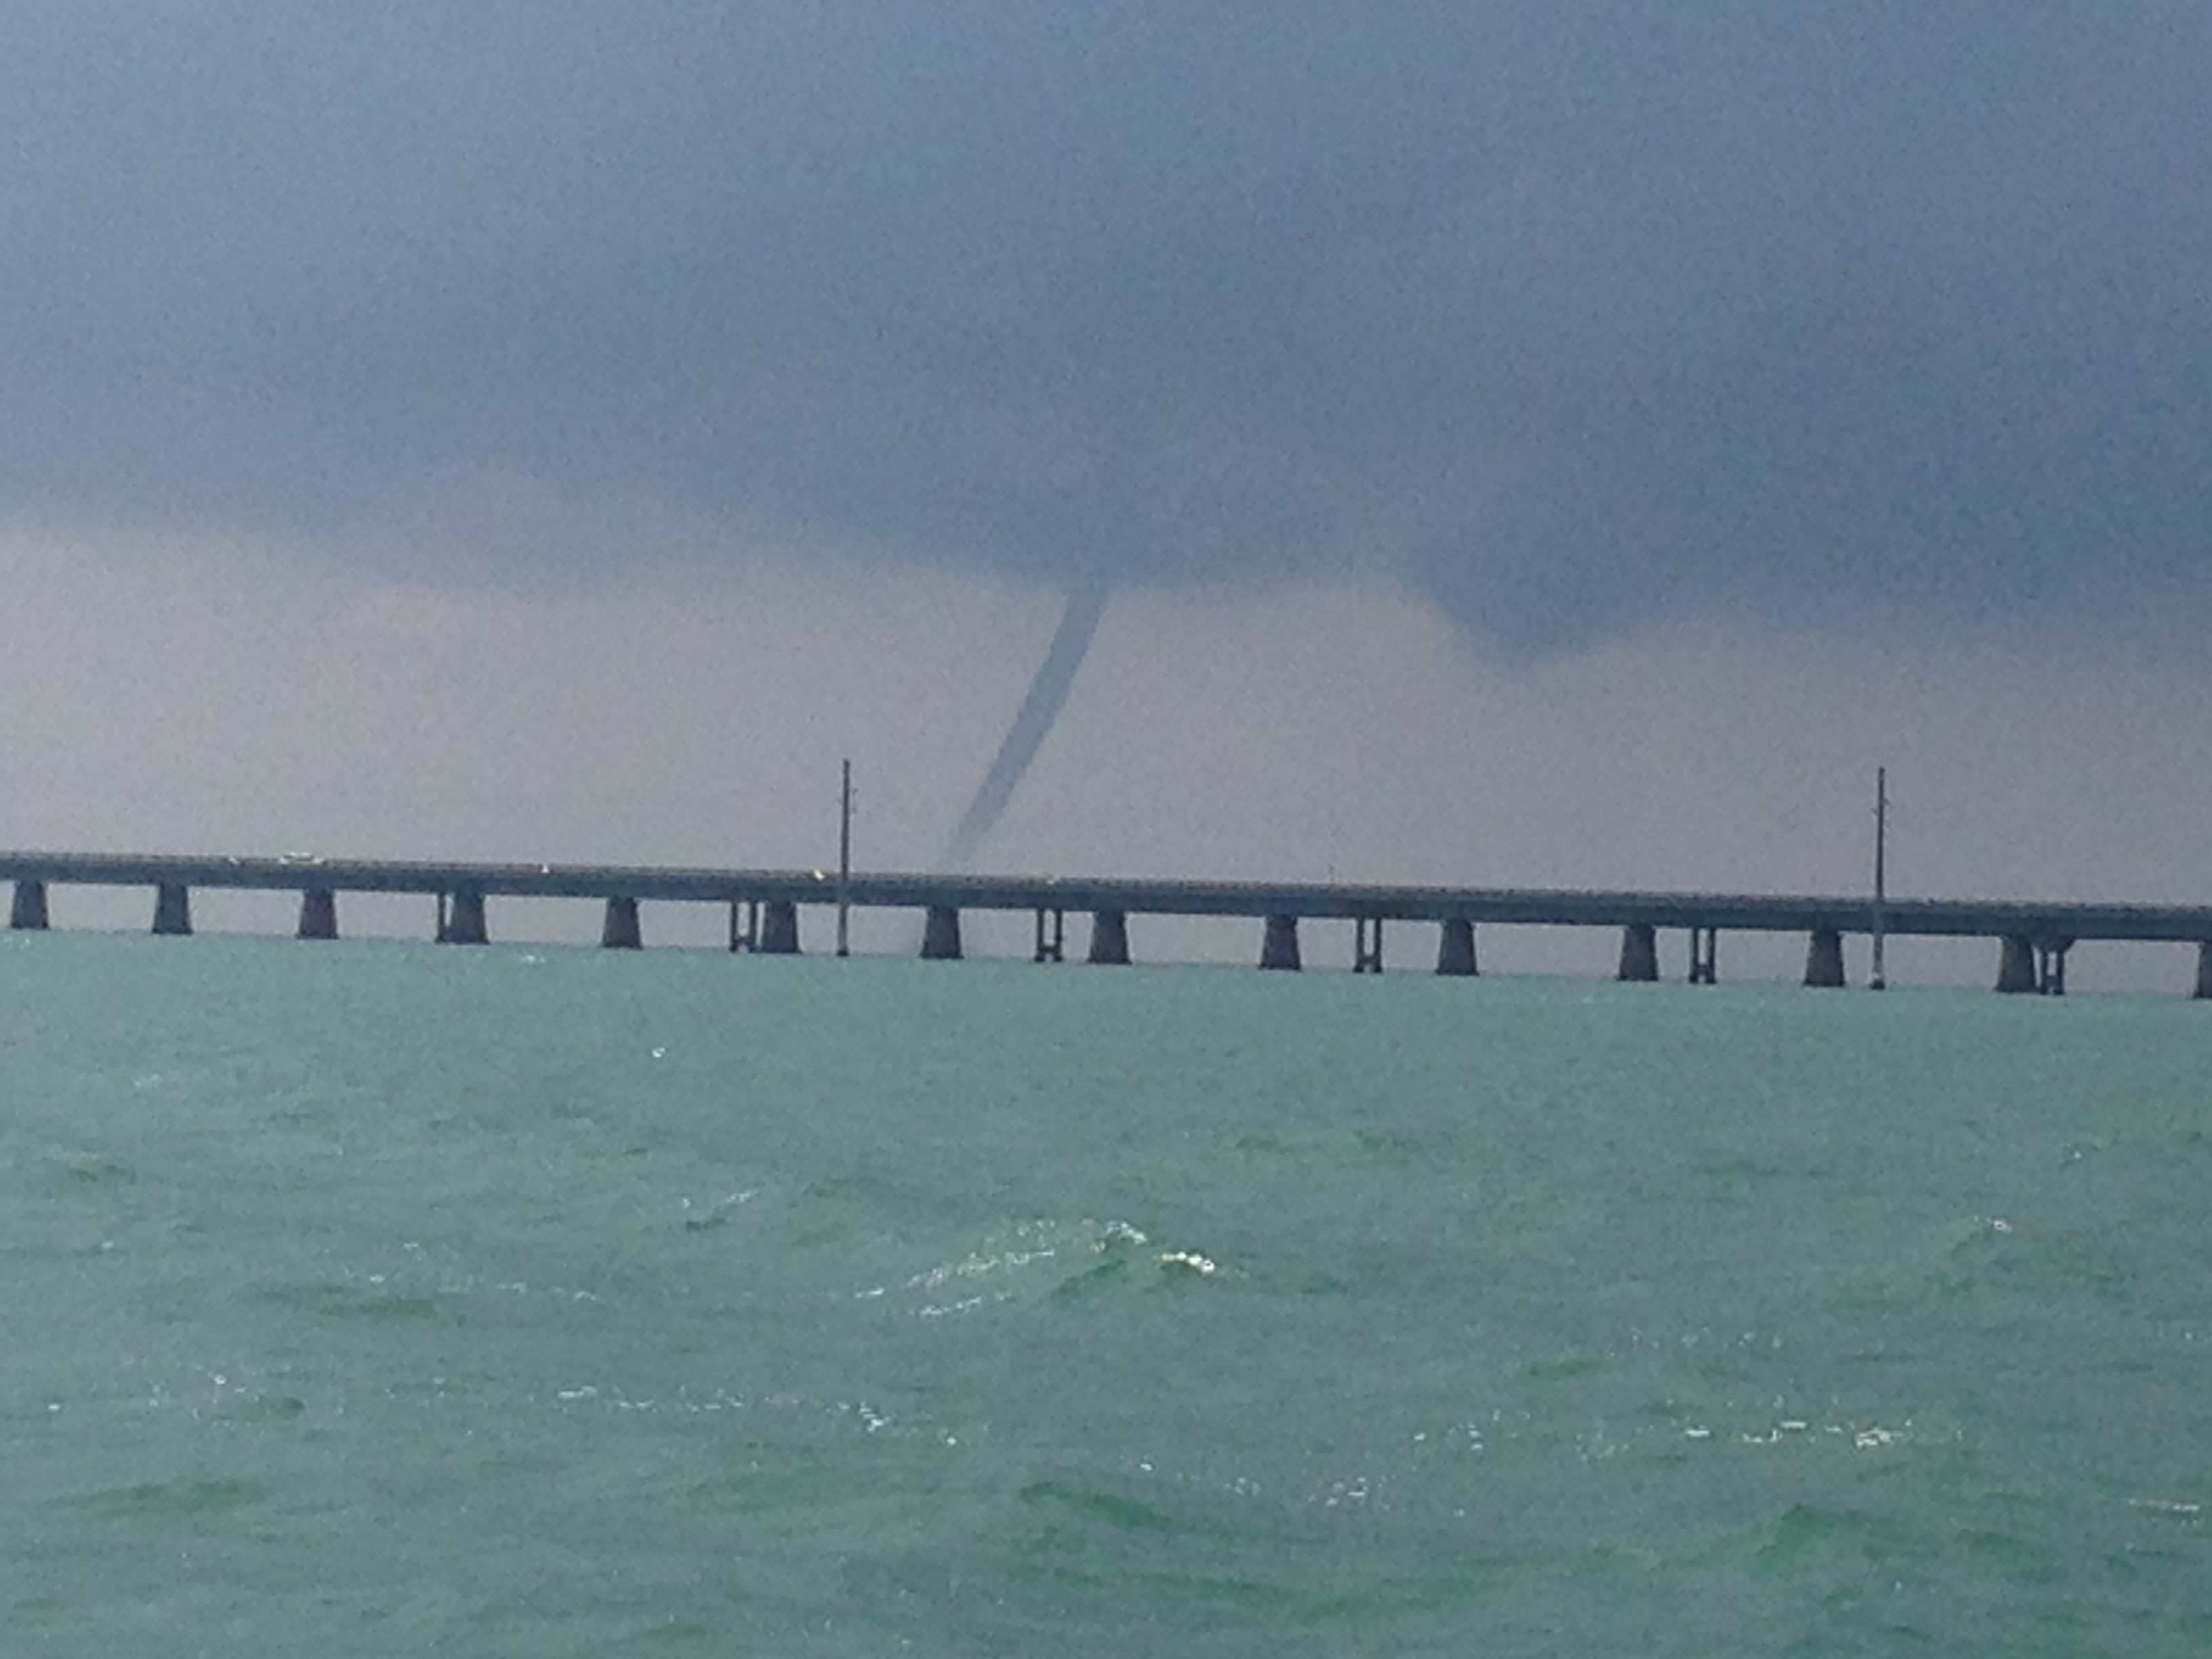 This time of year the afternoons often bring storms. We saw this big water spout on a tarpon charter Tuesday.